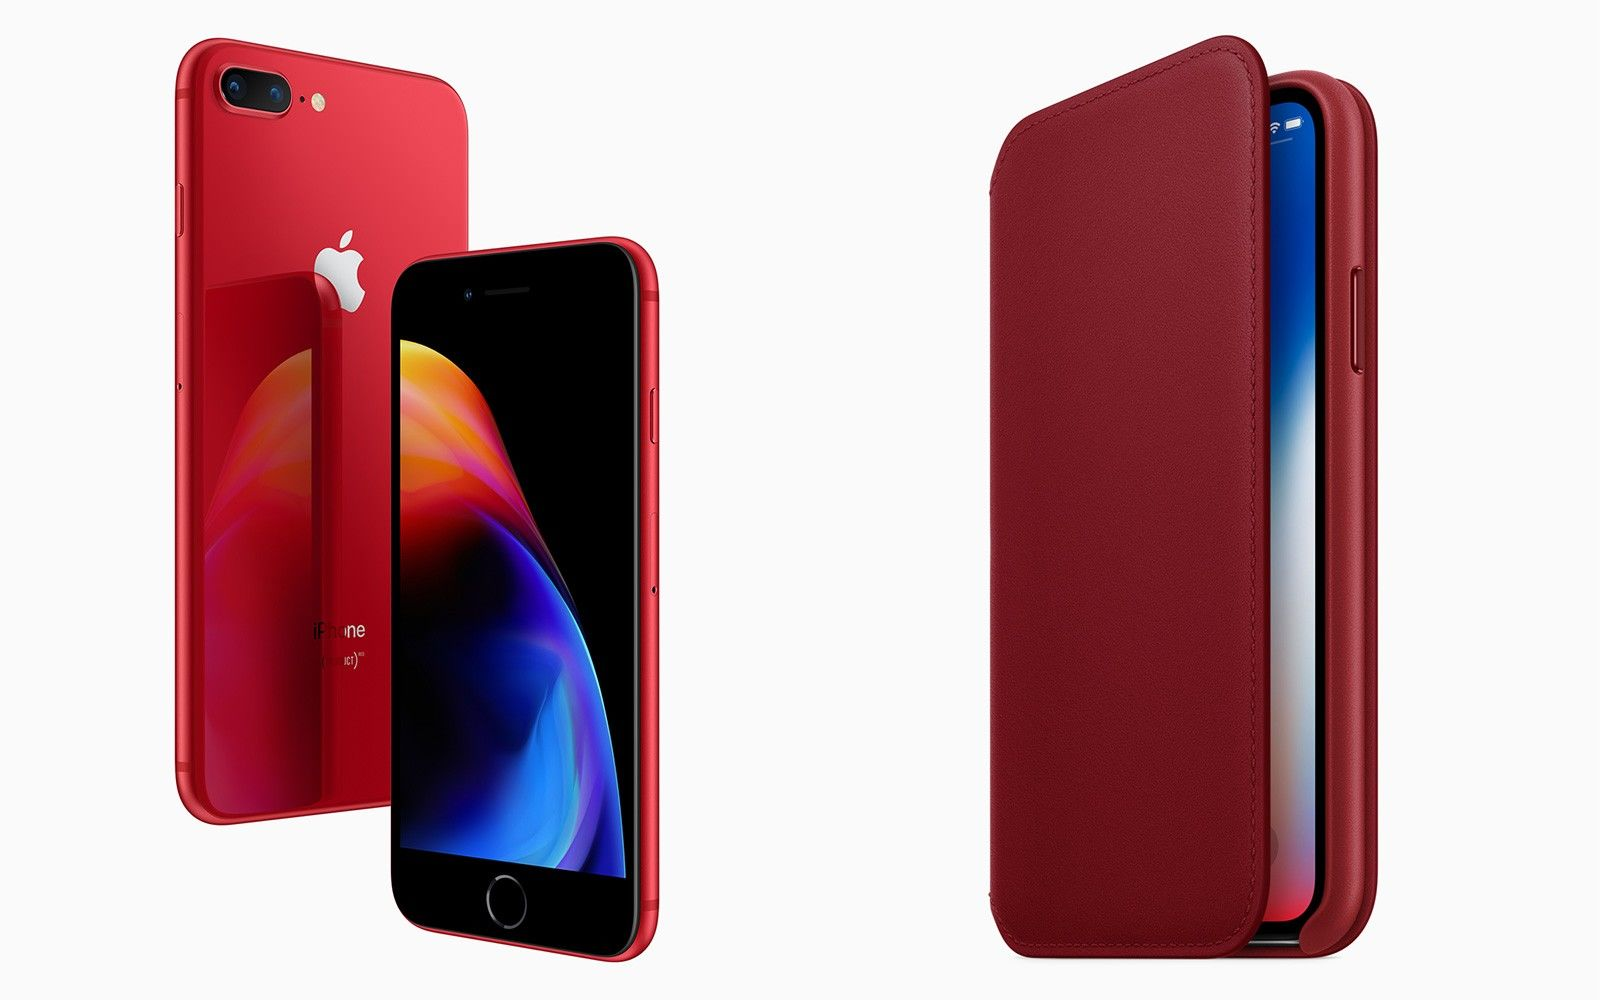 Apple Umumkan Perilisan iPhone 8 dan 8 Plus Spesial Warna Merah